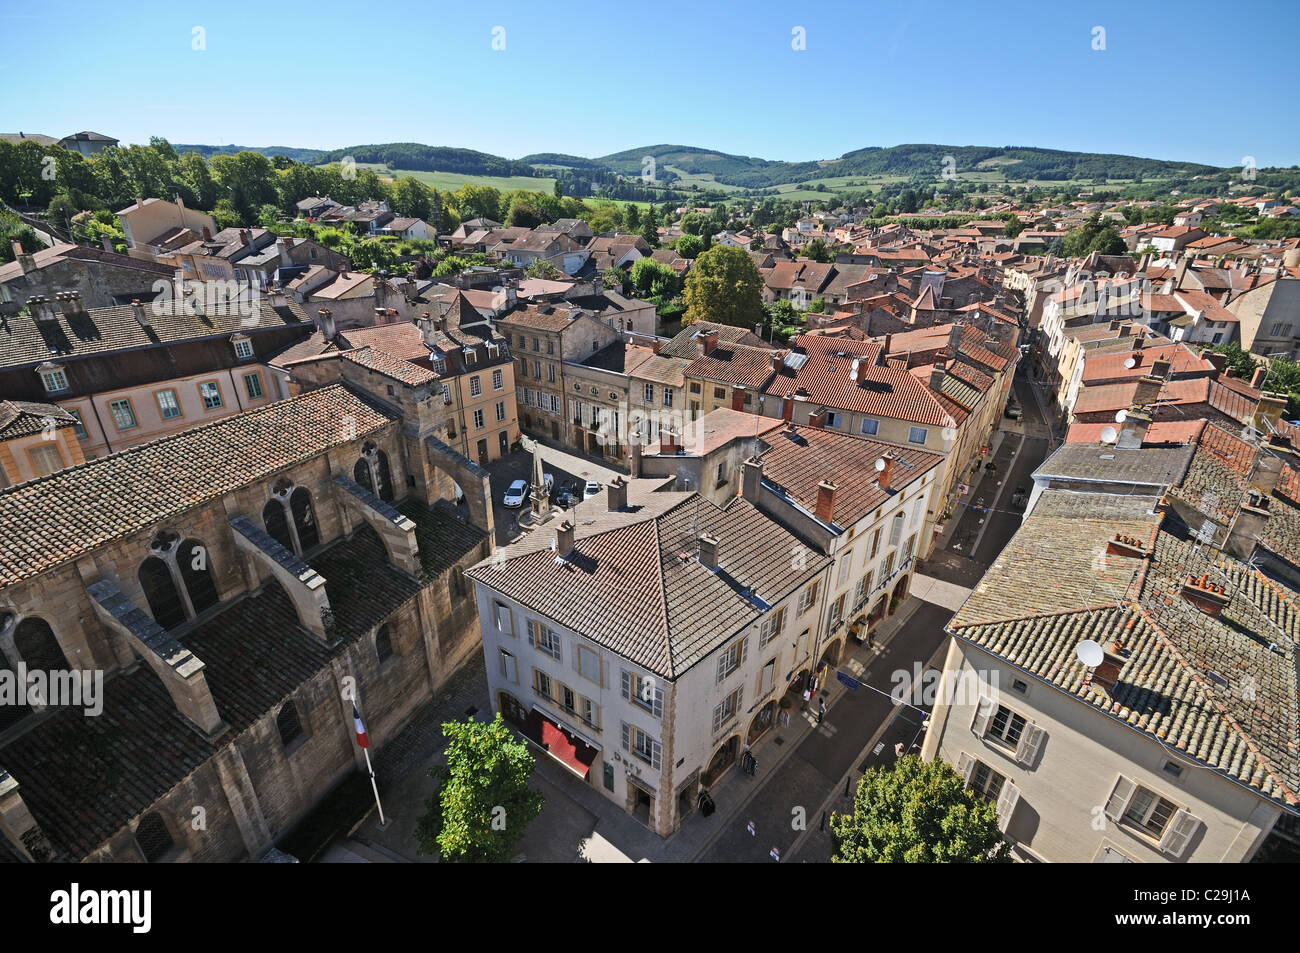 Roofs of town of Cluny seen from Tower of Cheese or Tour de Fromage Cluny Burgundy France Bourgogne - Stock Image